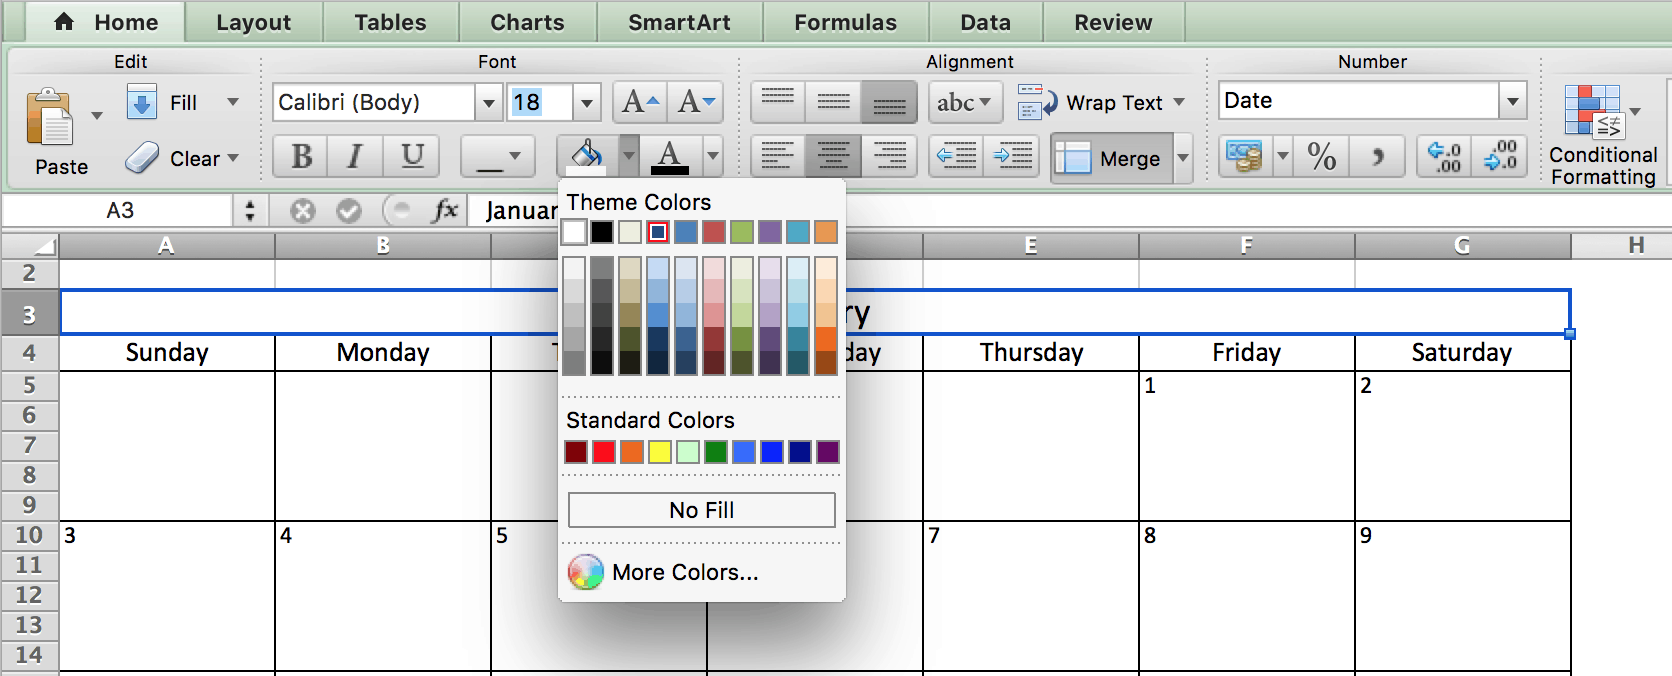 Ediblewildsus  Nice Make A  Calendar In Excel Includes Free Template With Magnificent Choosing Colors  Calendar In Excel With Cool Excel Report Template Also Ms Excel Training In Addition Legend In Excel And How To Total A Column In Excel As Well As Excel Minus Formula Additionally Create A Line Graph In Excel From Smartsheetcom With Ediblewildsus  Magnificent Make A  Calendar In Excel Includes Free Template With Cool Choosing Colors  Calendar In Excel And Nice Excel Report Template Also Ms Excel Training In Addition Legend In Excel From Smartsheetcom